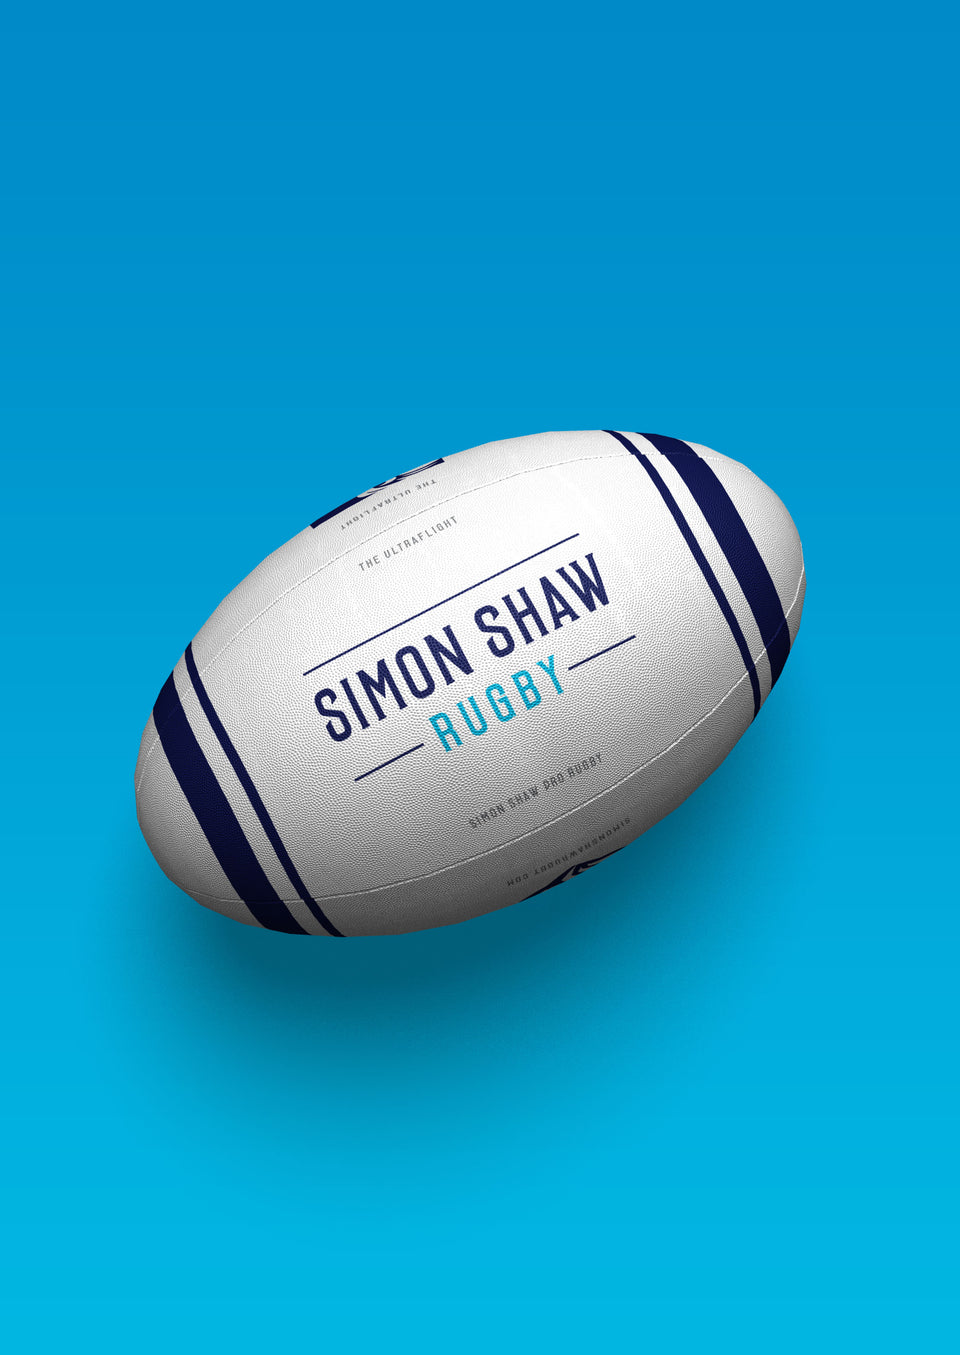 The UltraFlight Rugby Ball